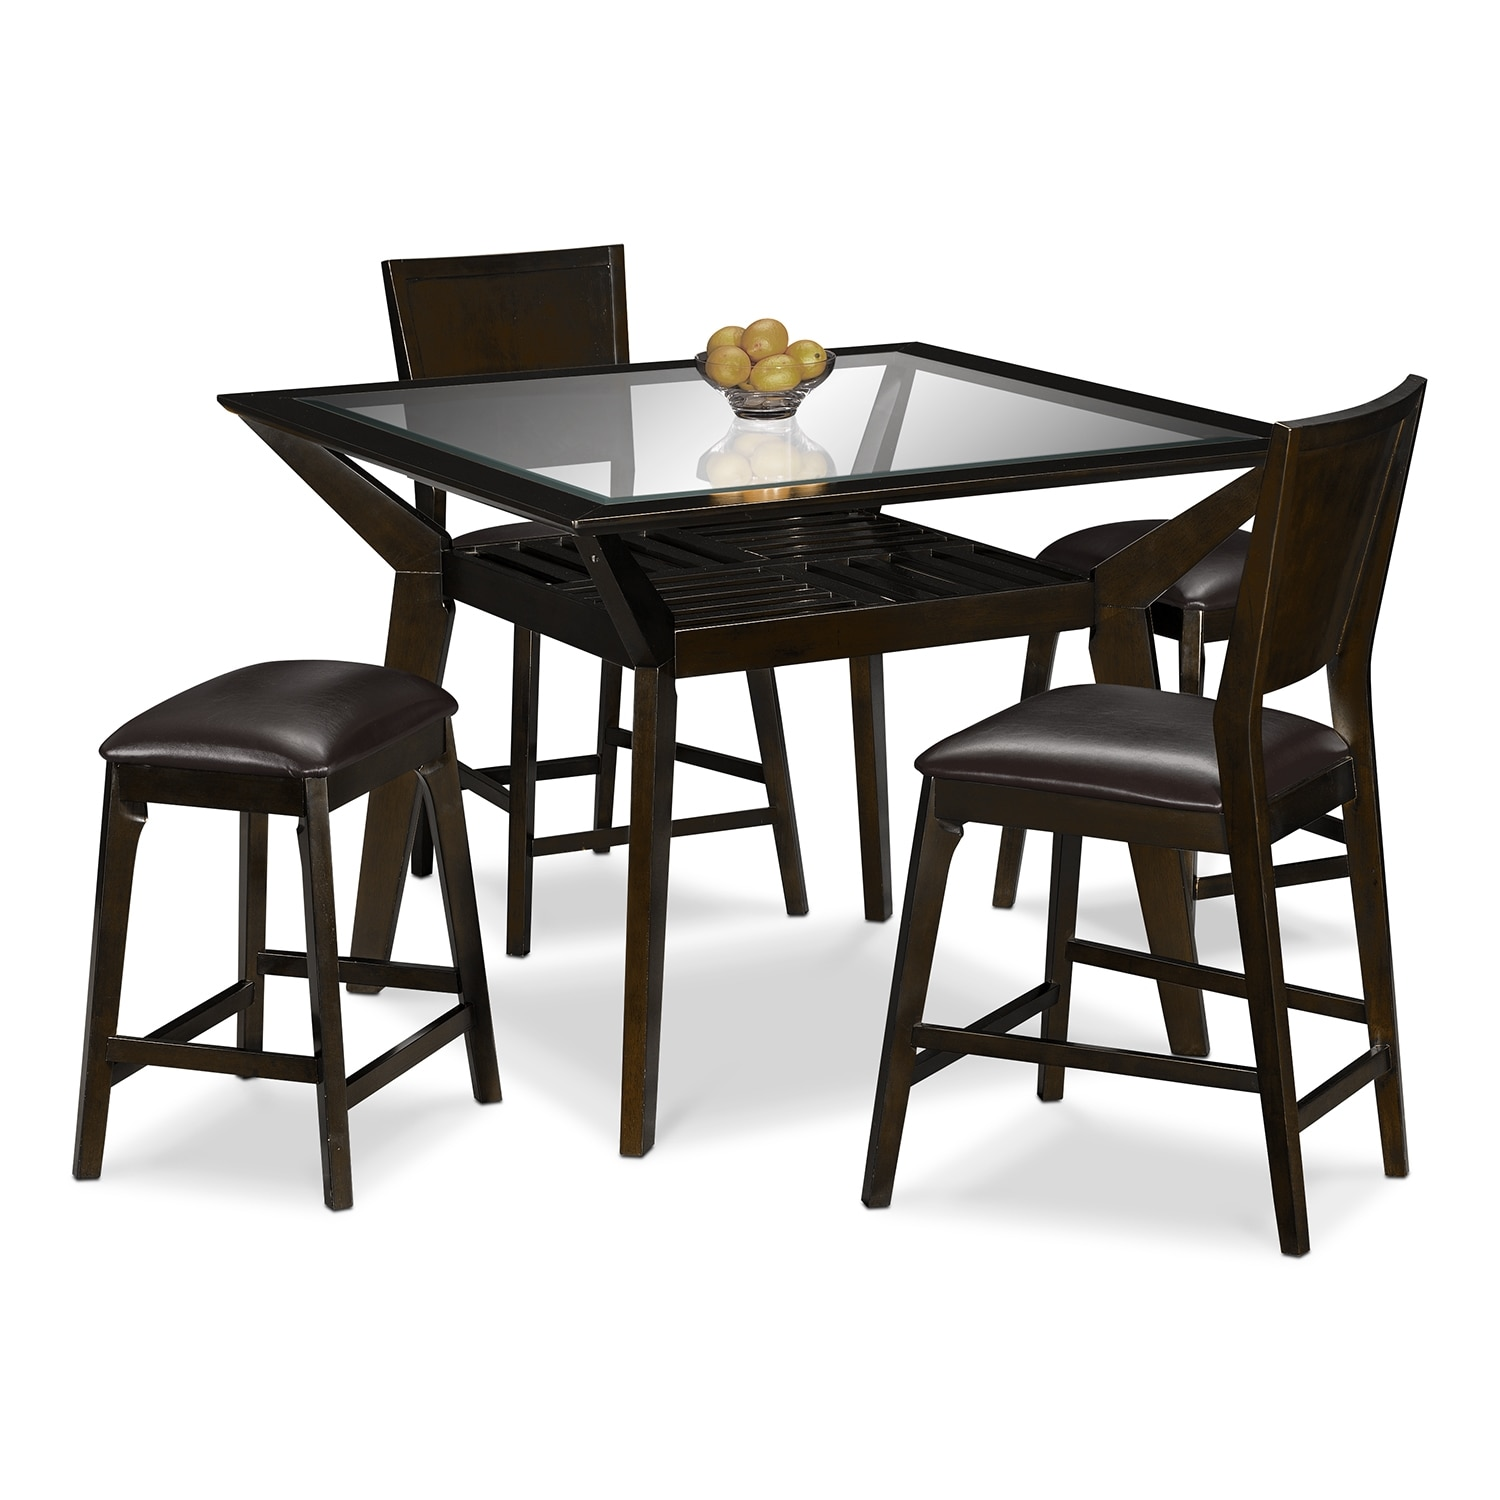 Mystic Counter-Height Table, 2 Chairs and 2 Backless Stools - Merlot and Chocolate